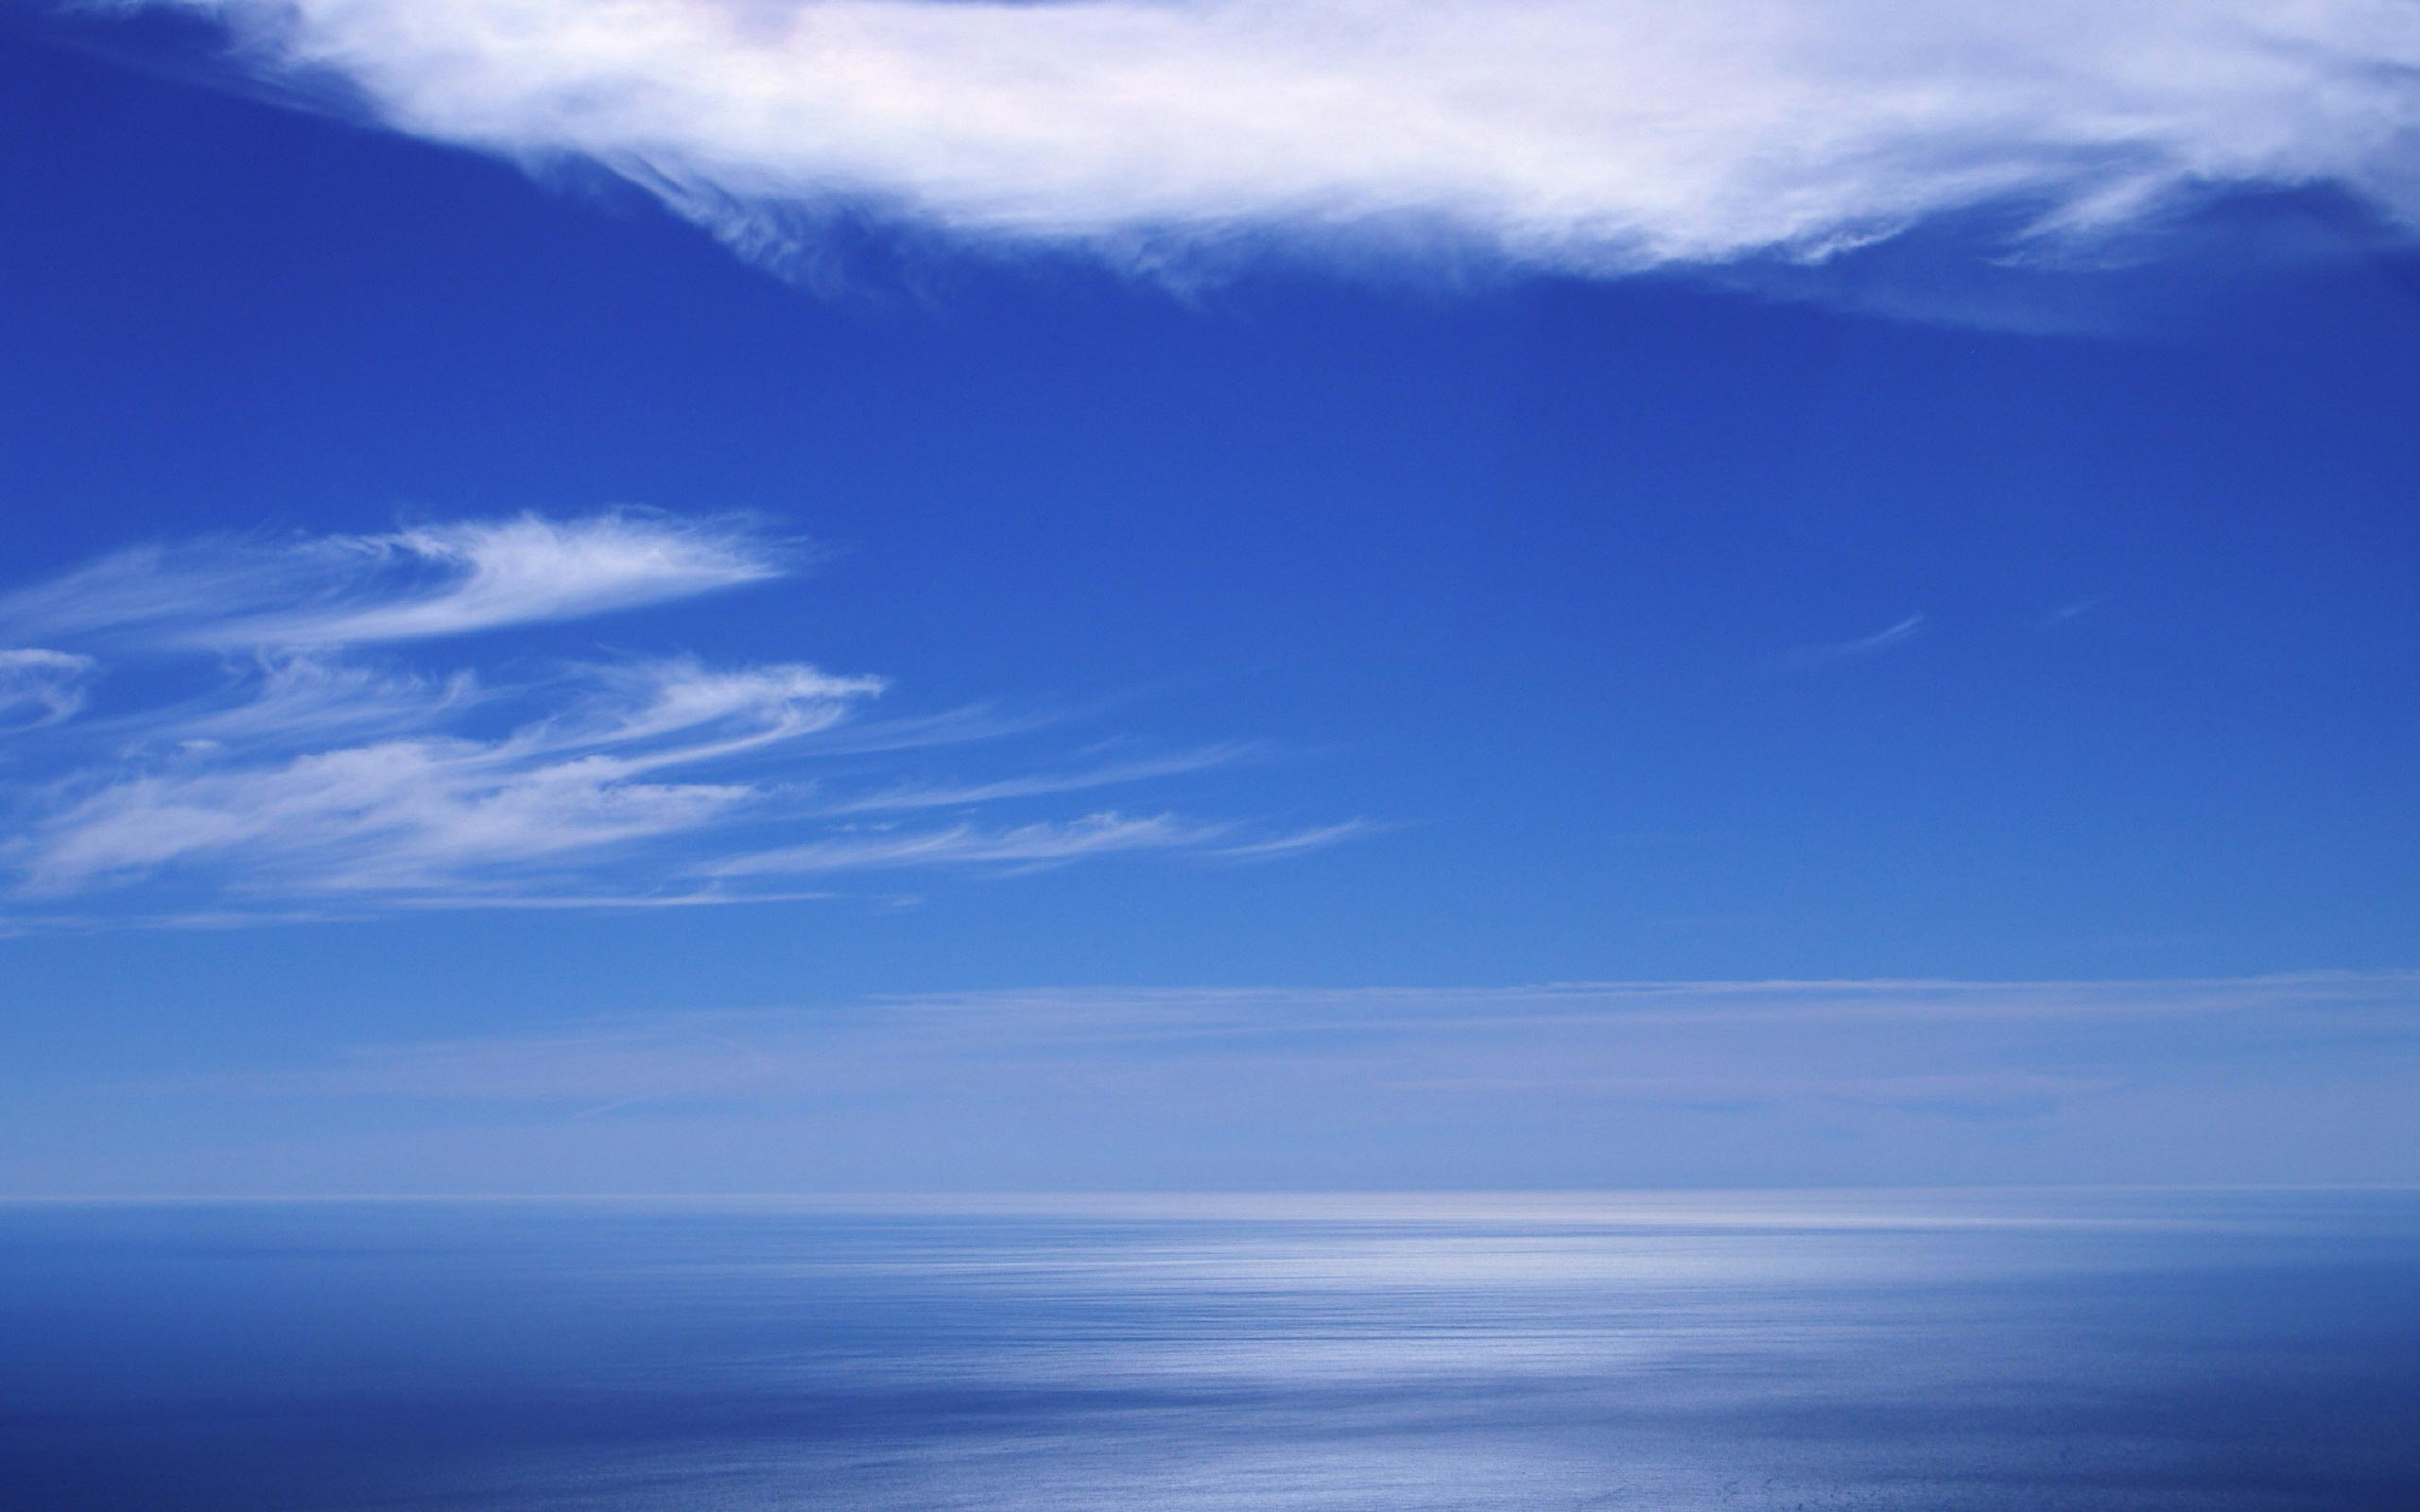 Desktop Backgrounds Sky Posted By Michelle Simpson